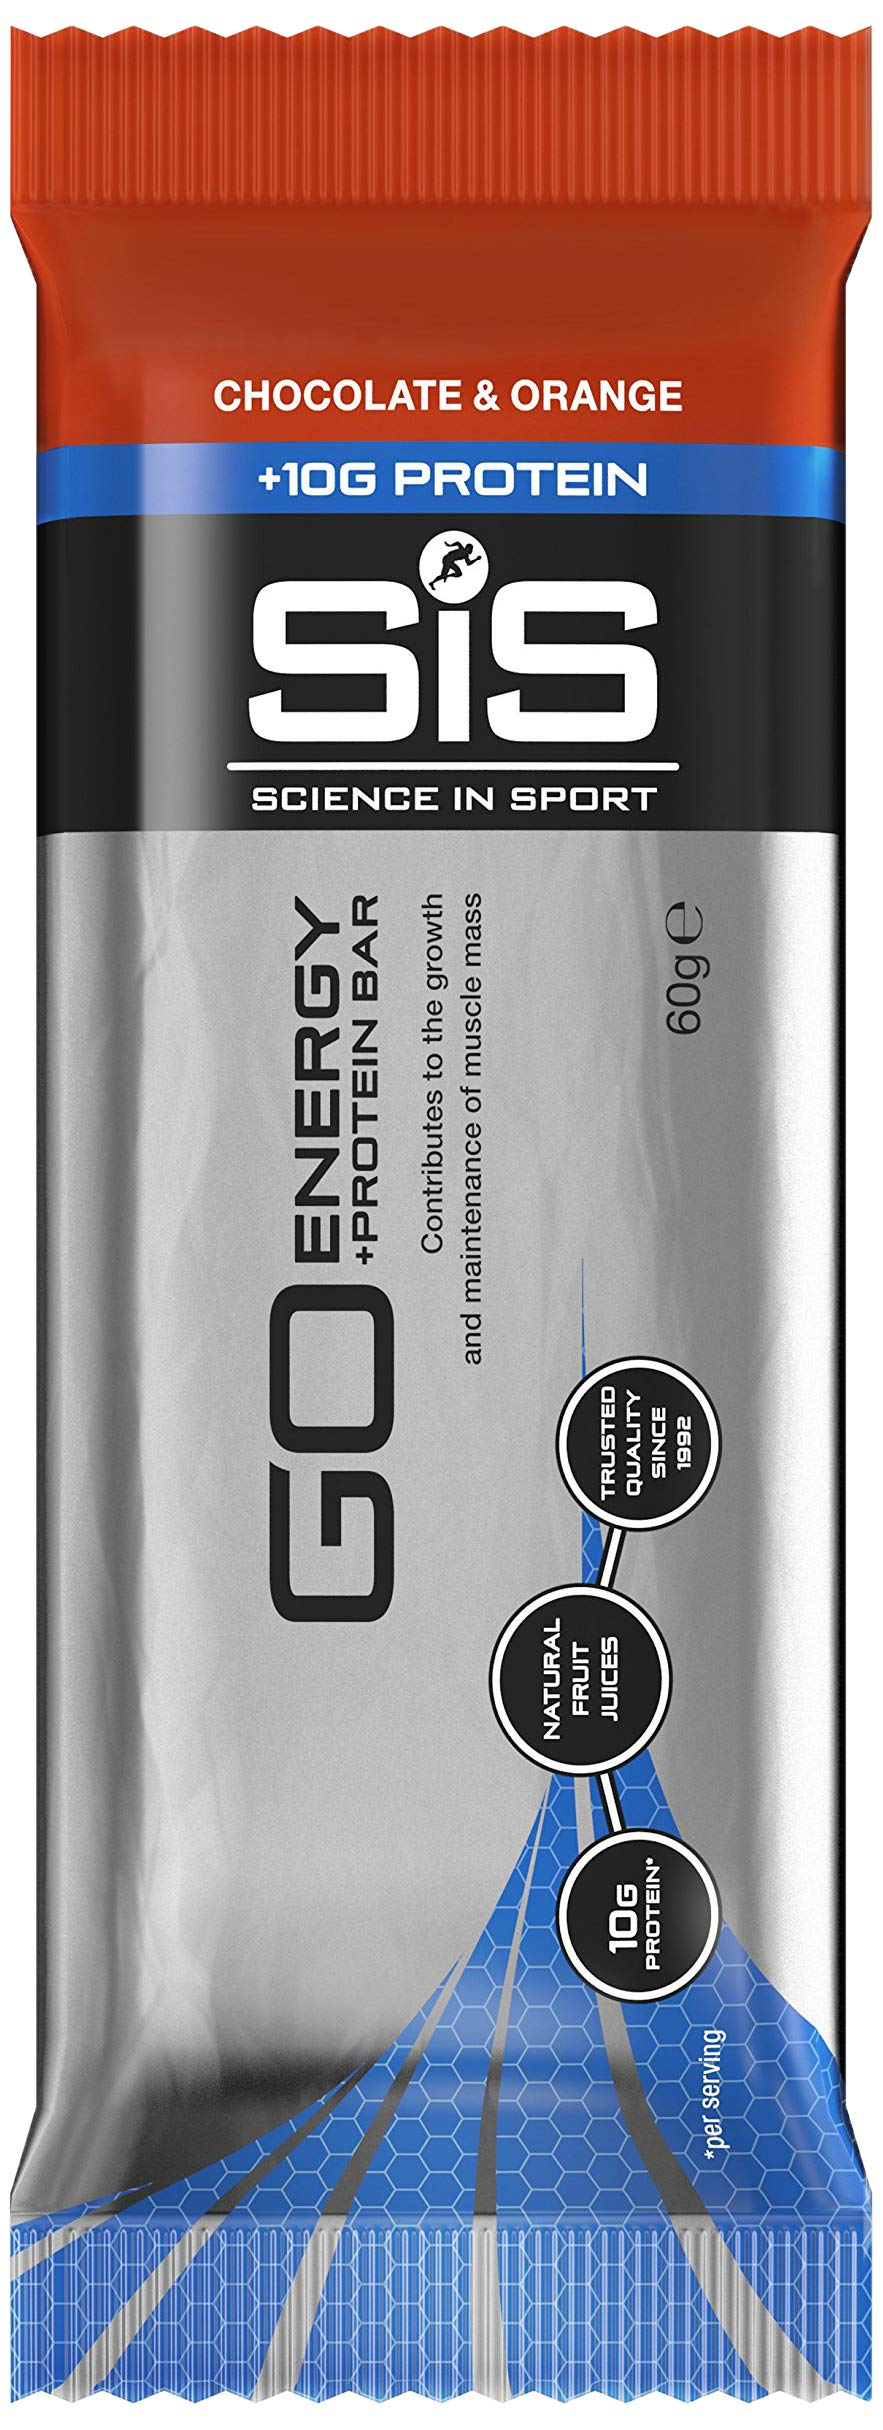 Science in Sport GO Energy Plus Protein Bar, Chocolate and Orange, 60 g, Pack of 24 product image